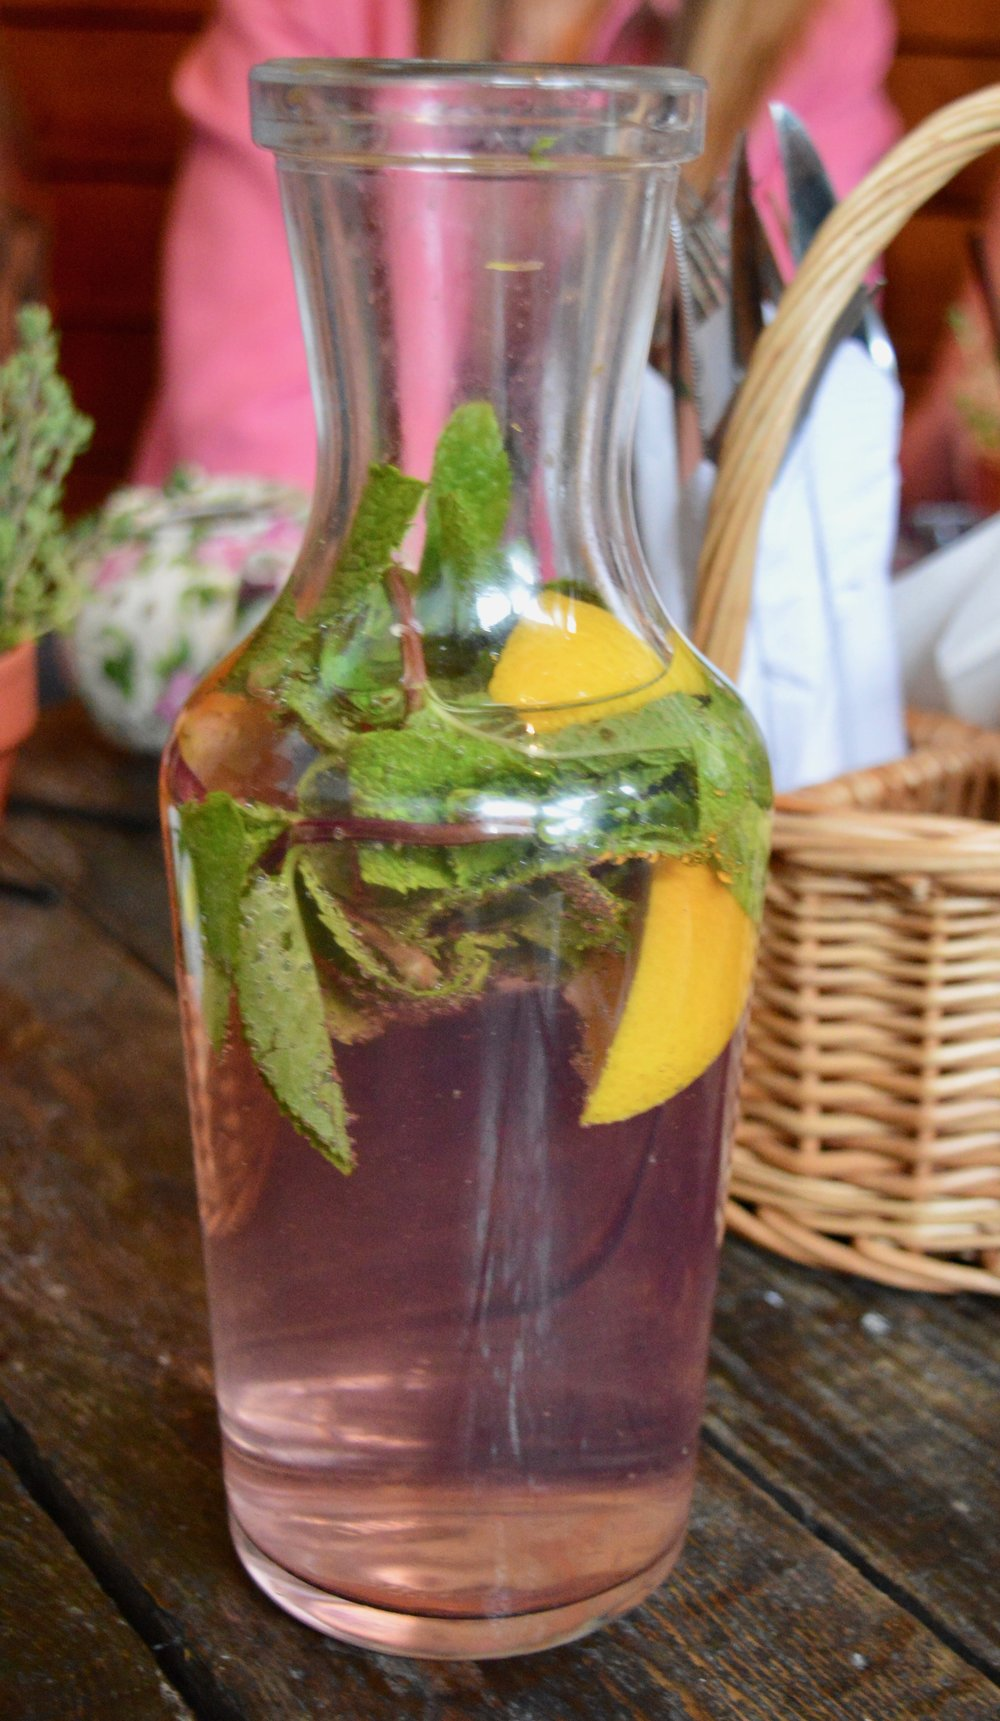 gin-and-tonic-the-botanist-newcastle-summer-cocktail-menu-launch-opr-elle-blonde-luxury-lifestyle-blog